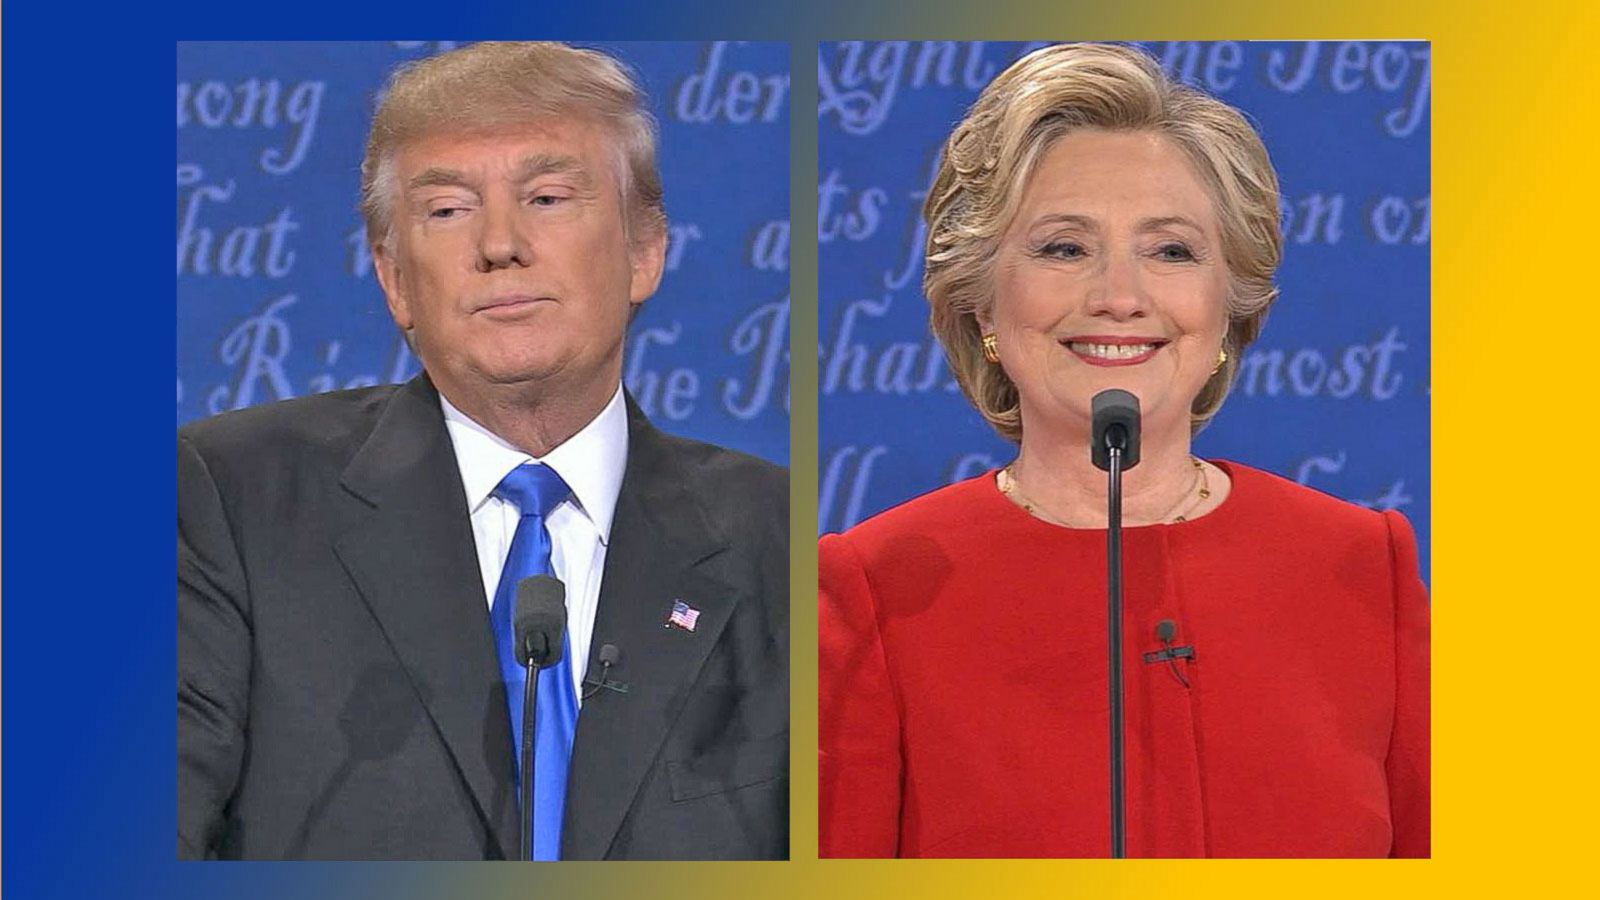 VIDEO: Best Moments of the First Presidential Debate